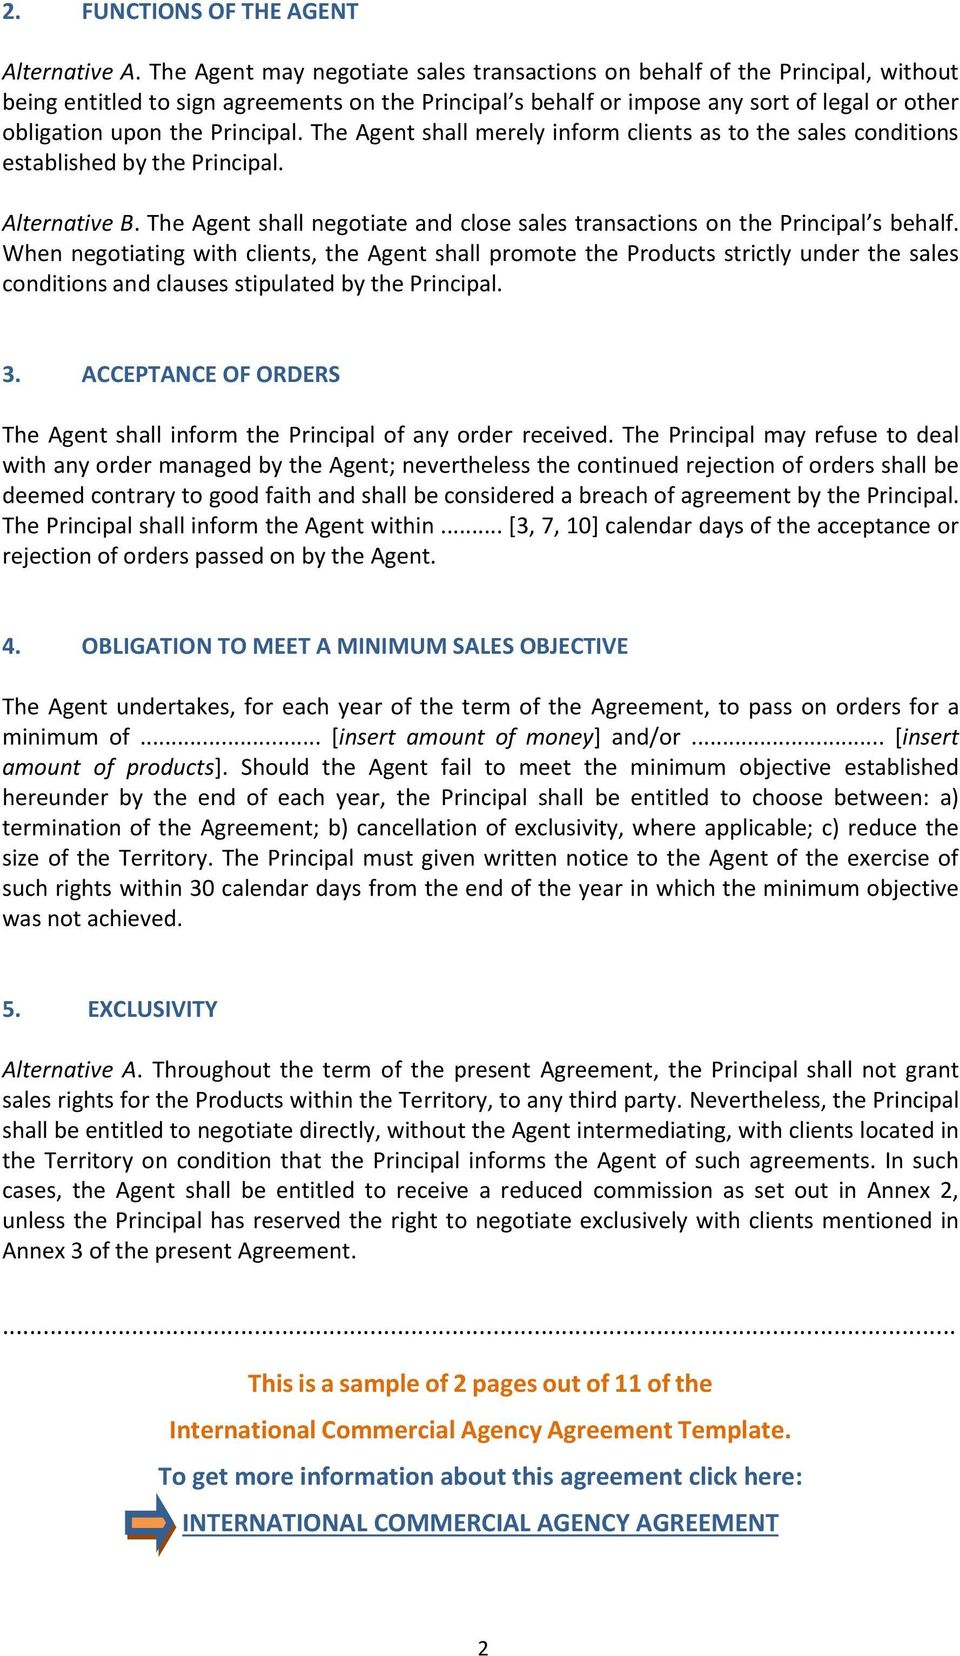 Principal. The Agent shall merely inform clients as to the sales conditions established by the Principal. Alternative B.